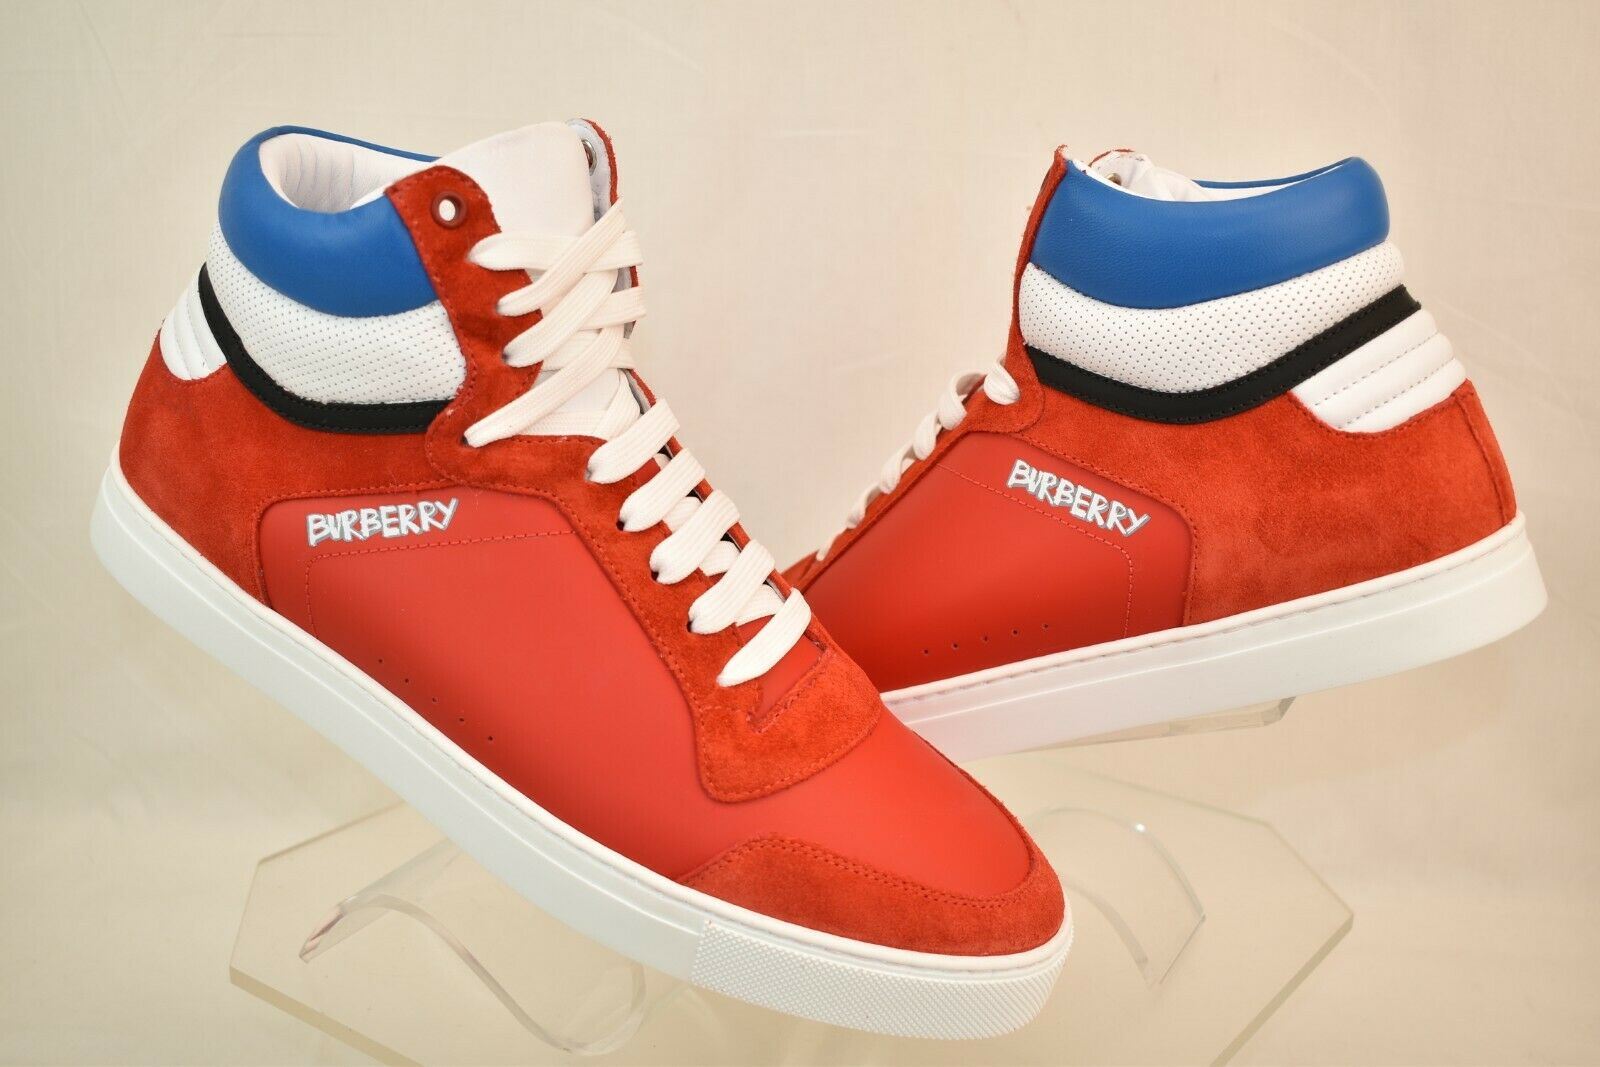 Burberry Reeth Red Suede